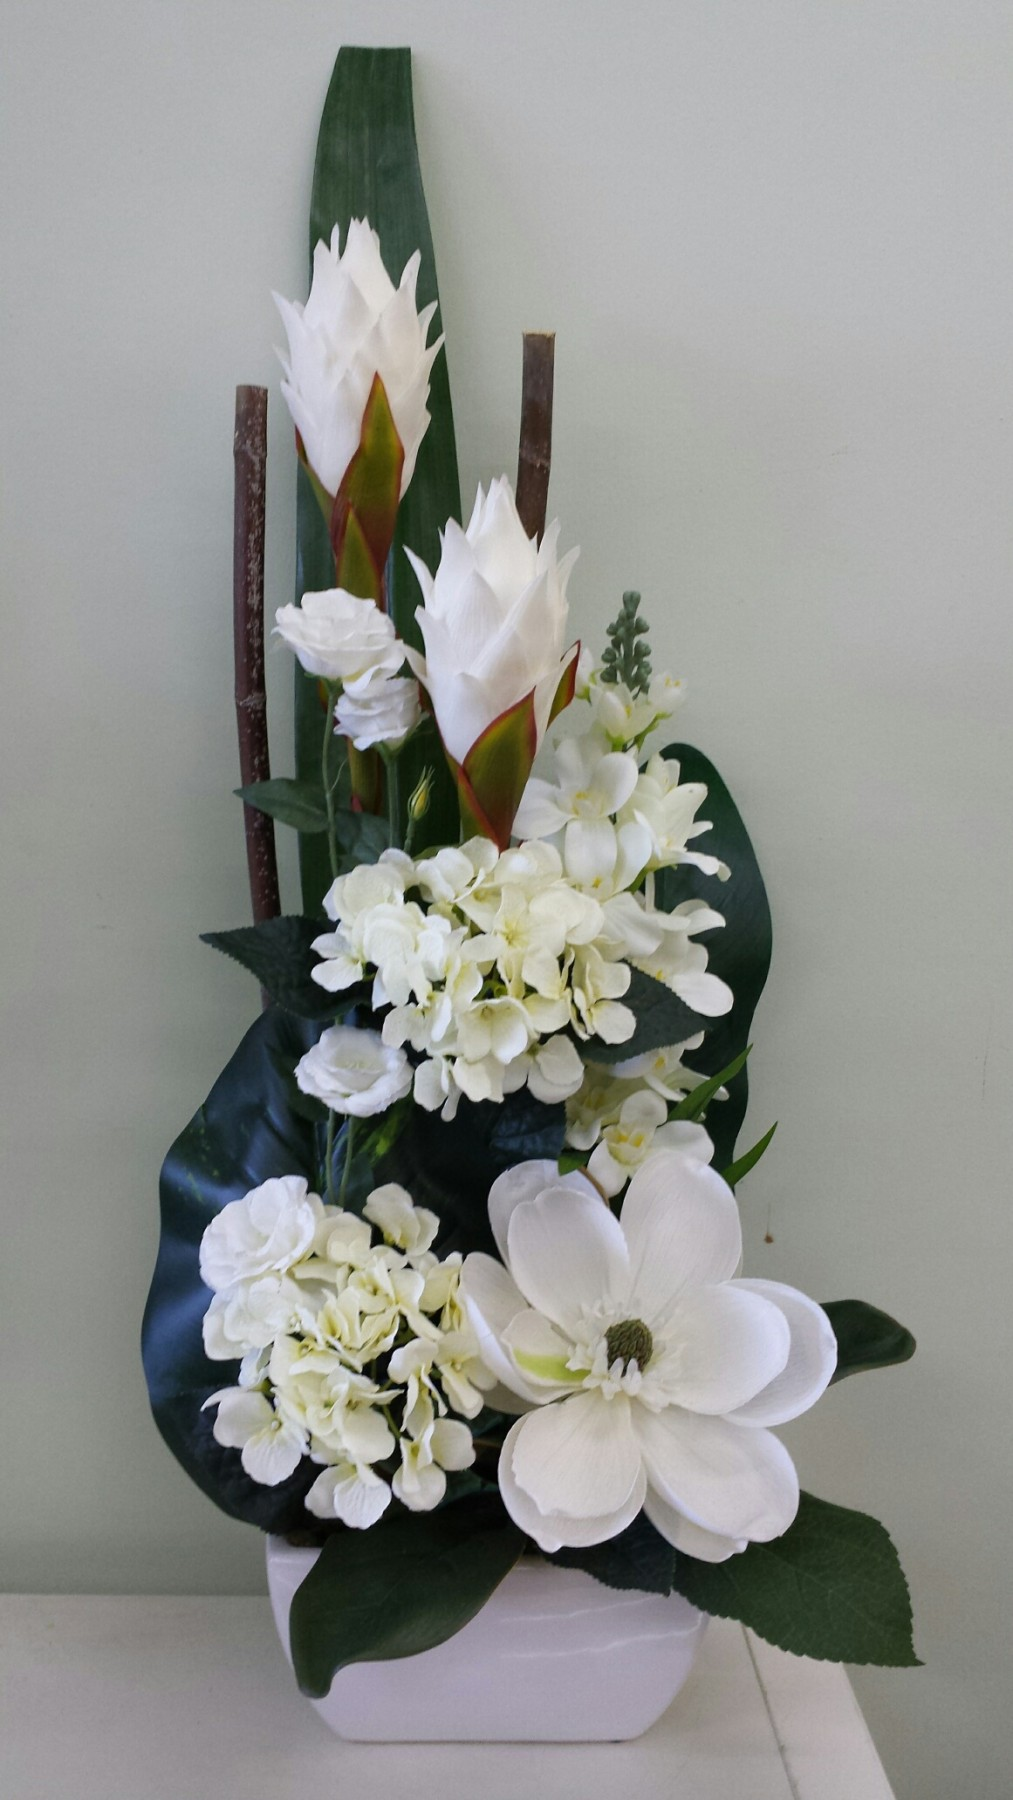 Artificial flowers online adelaide hills delivery all white and green artificial design mightylinksfo